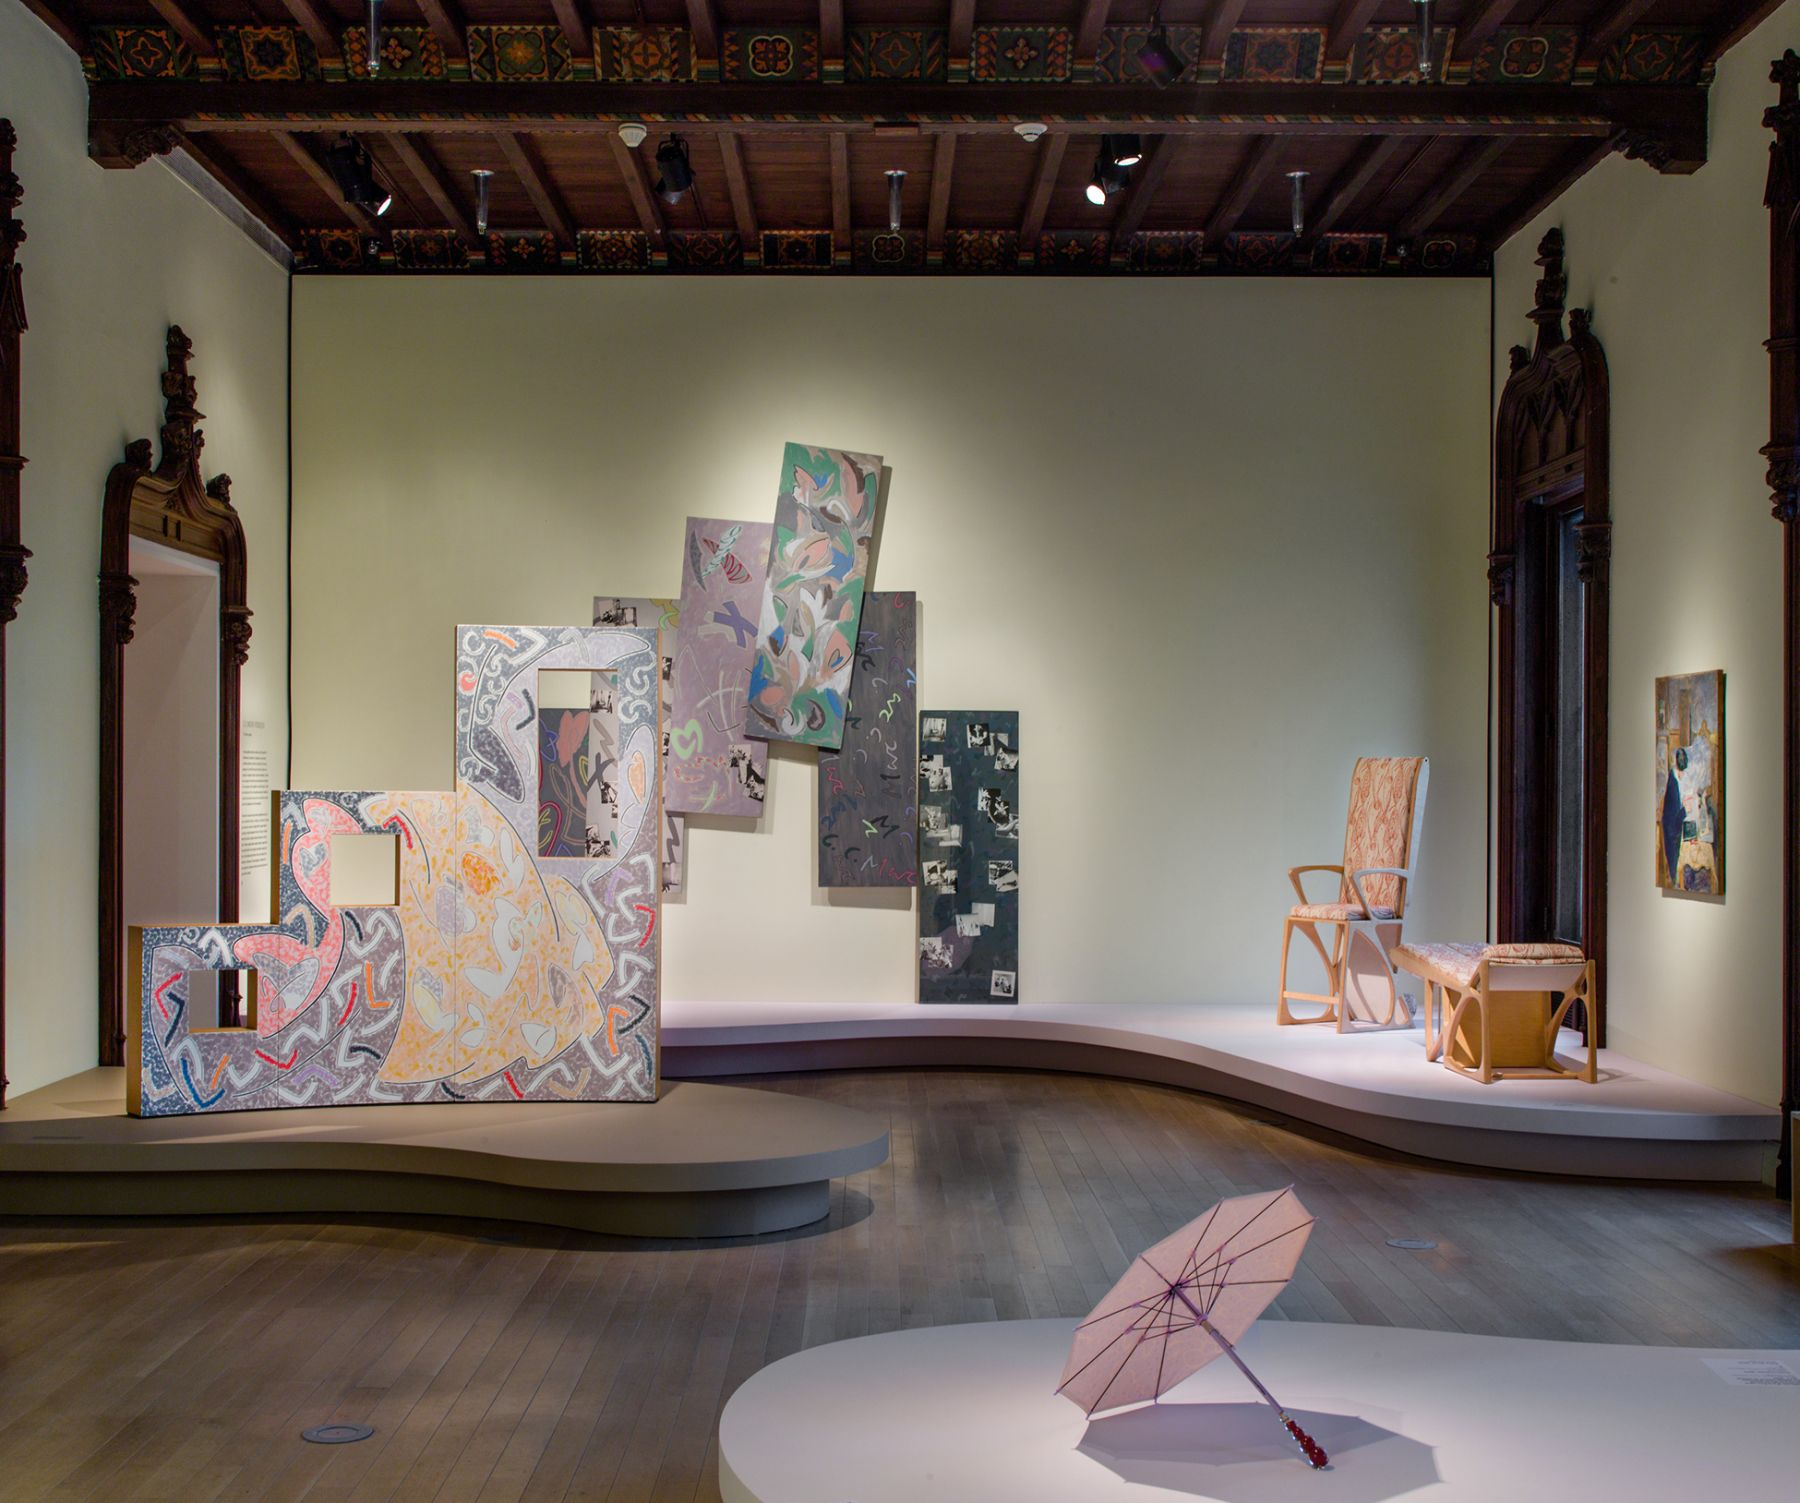 Marc Camille Chaimowicz: Your Place or Mine..., The Jewish Museum, New York, March 15 - August 6, 2018